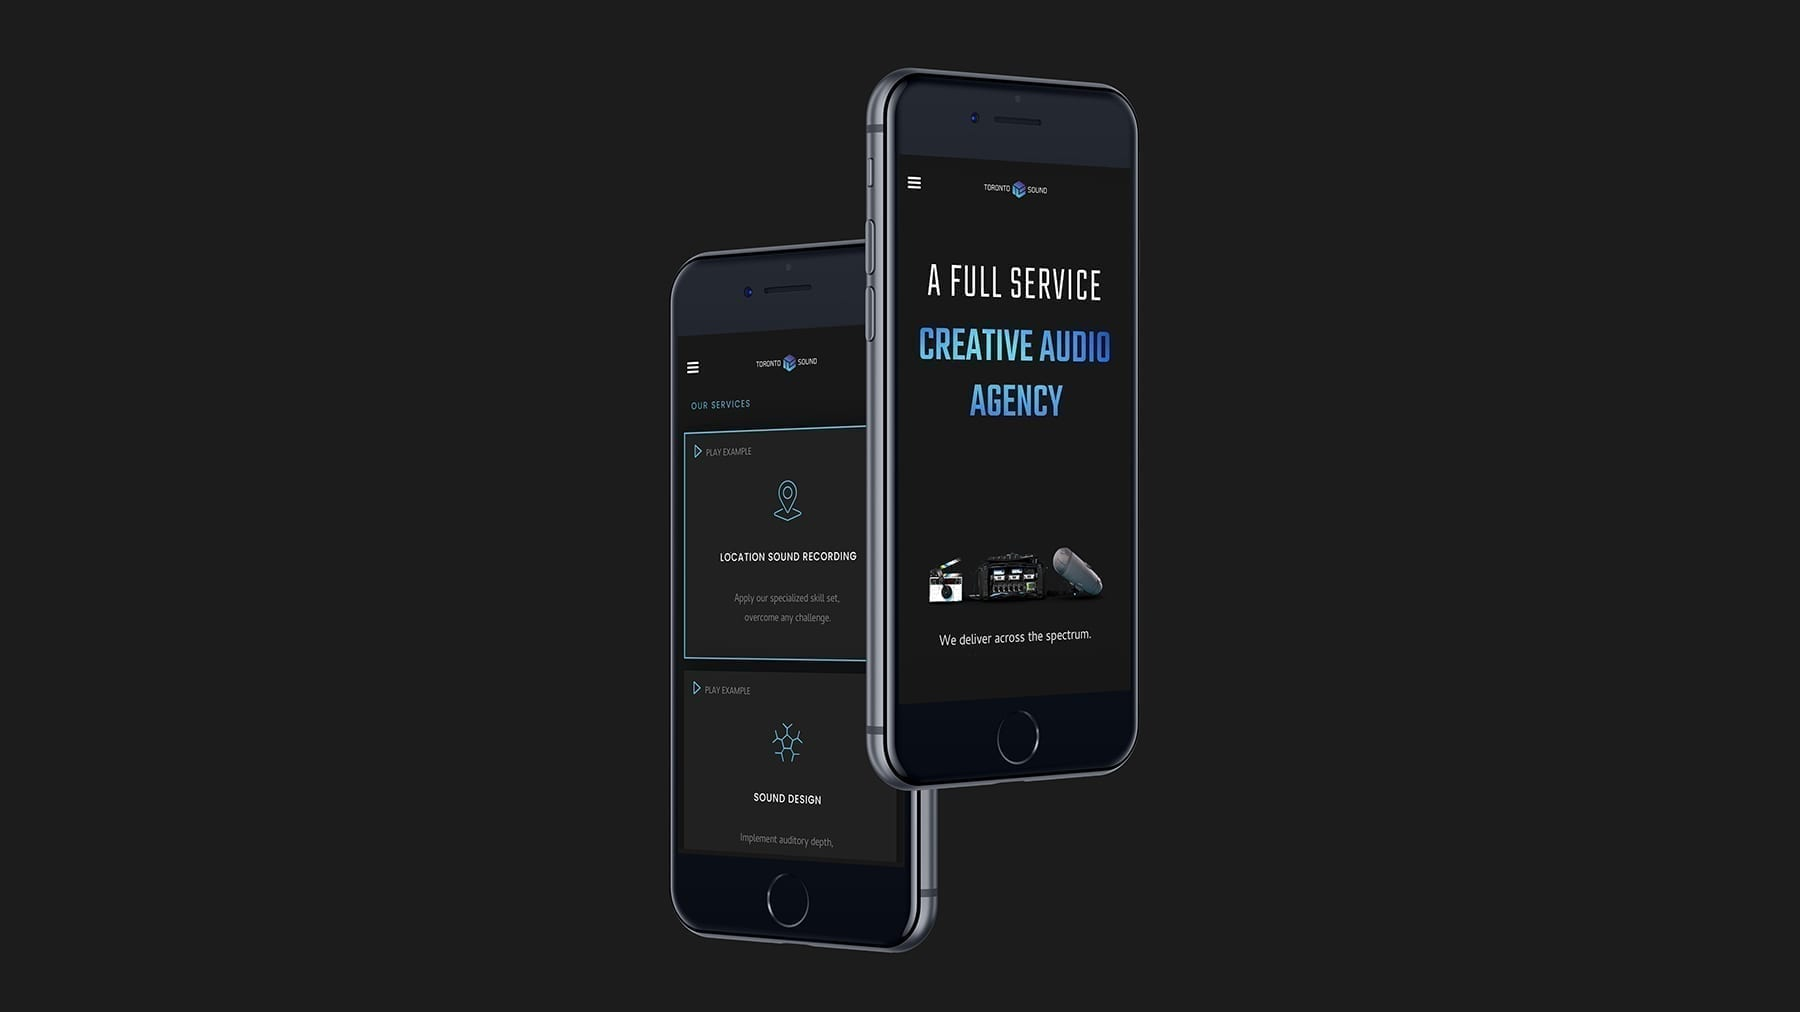 Toronto Sound website design for mobile